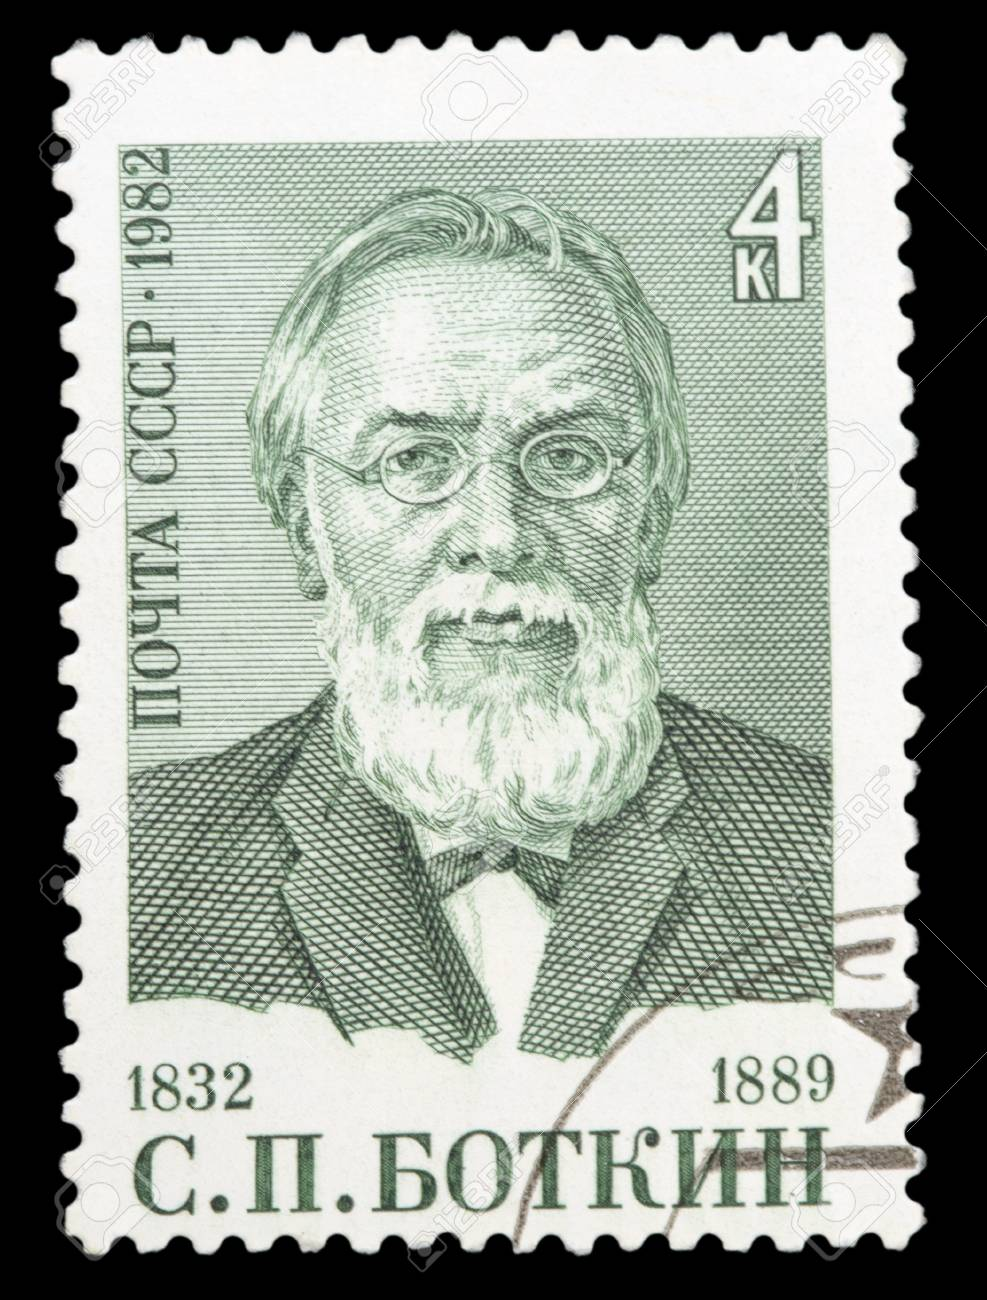 USSR - CIRCA 1982: The stamp printed in the Soviet Union, shows portrait , Sergei P. Botkin (1832-1889) Russian clinician, therapist, and activist, circa 1982 Stock Photo - 11798746